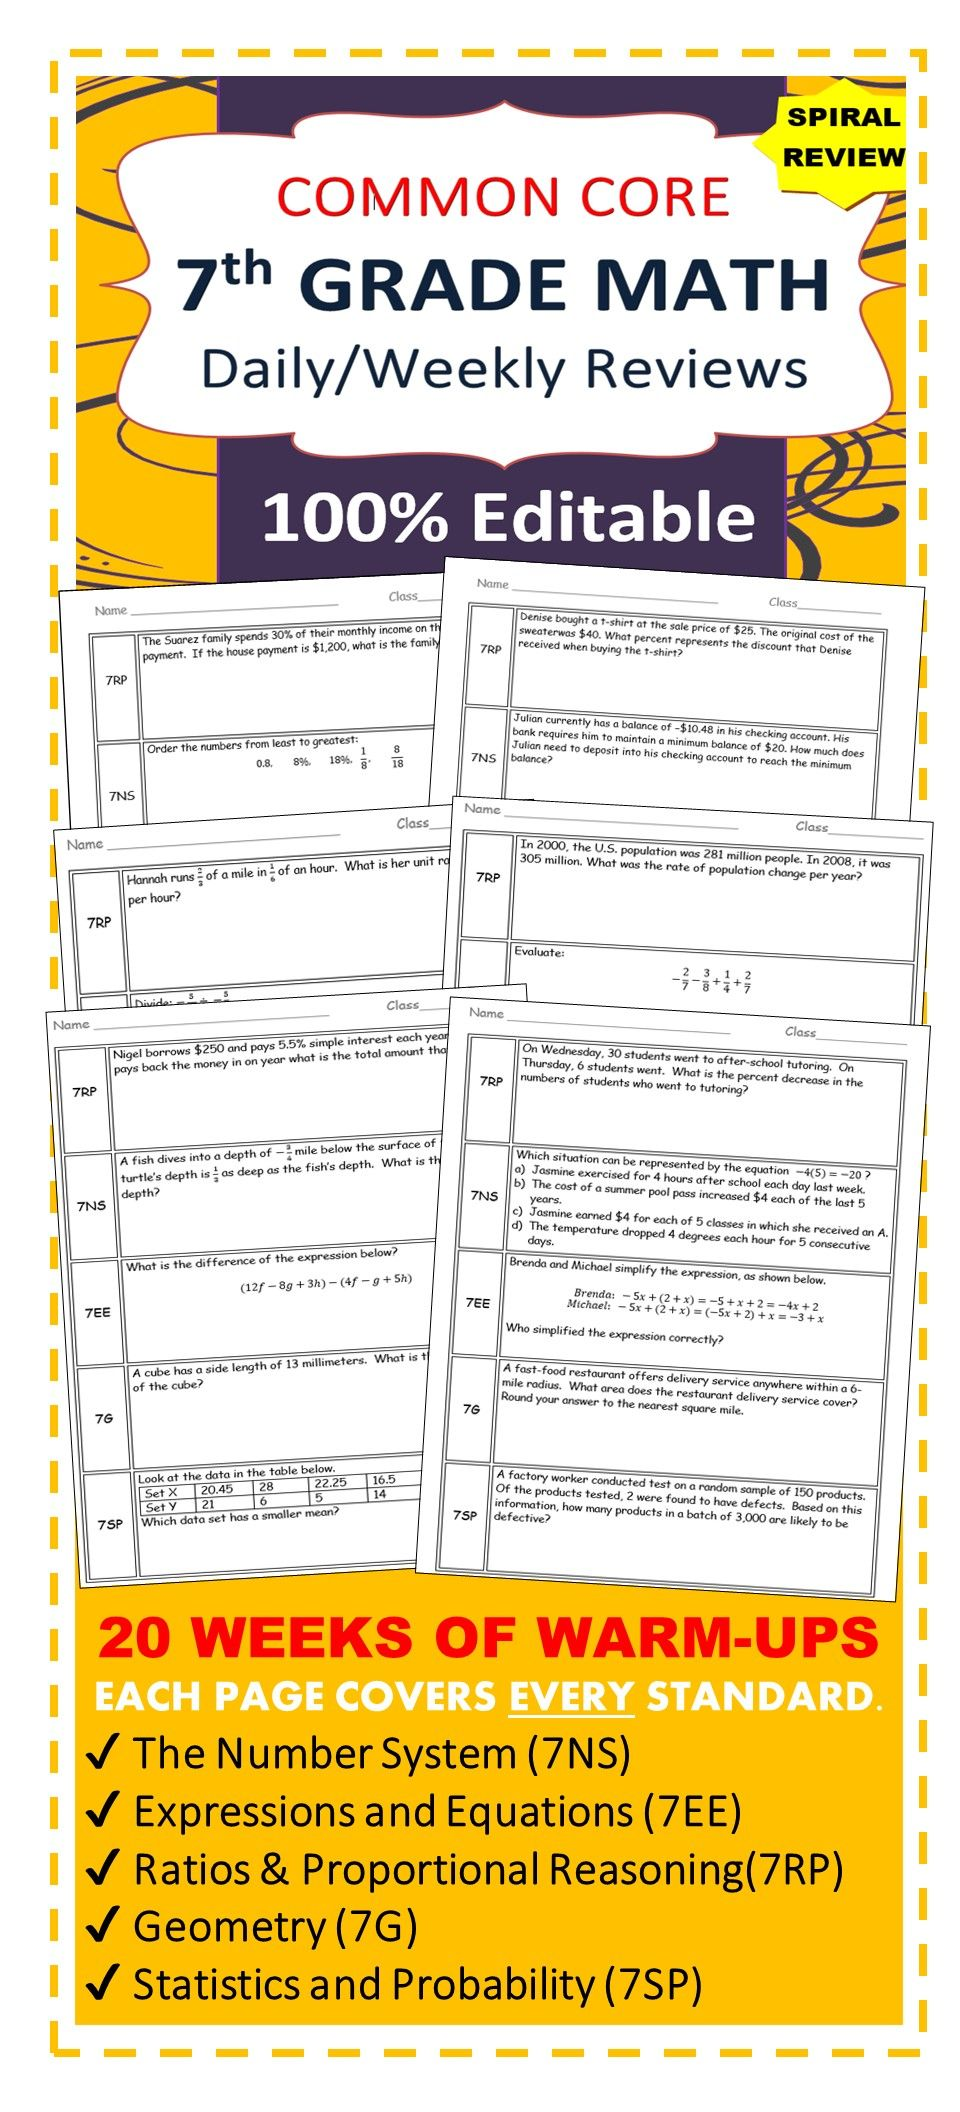 7th Grade Daily Weekly Spiral Math Review Common Core